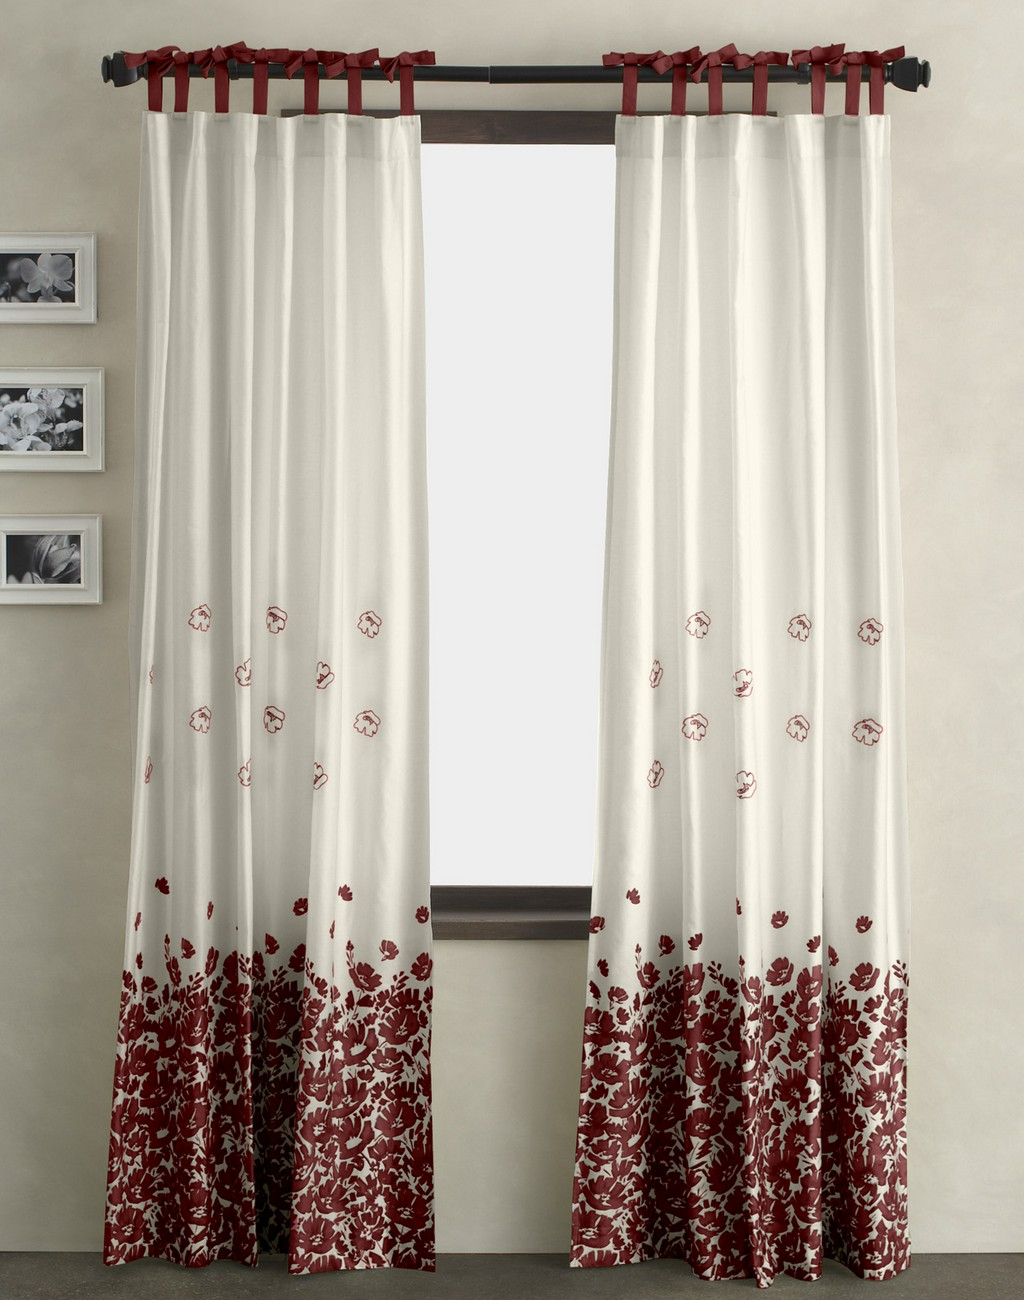 country style curtains for bedrooms, kitchen curtains and drapes, black white kitchen curtains, double curtain rods